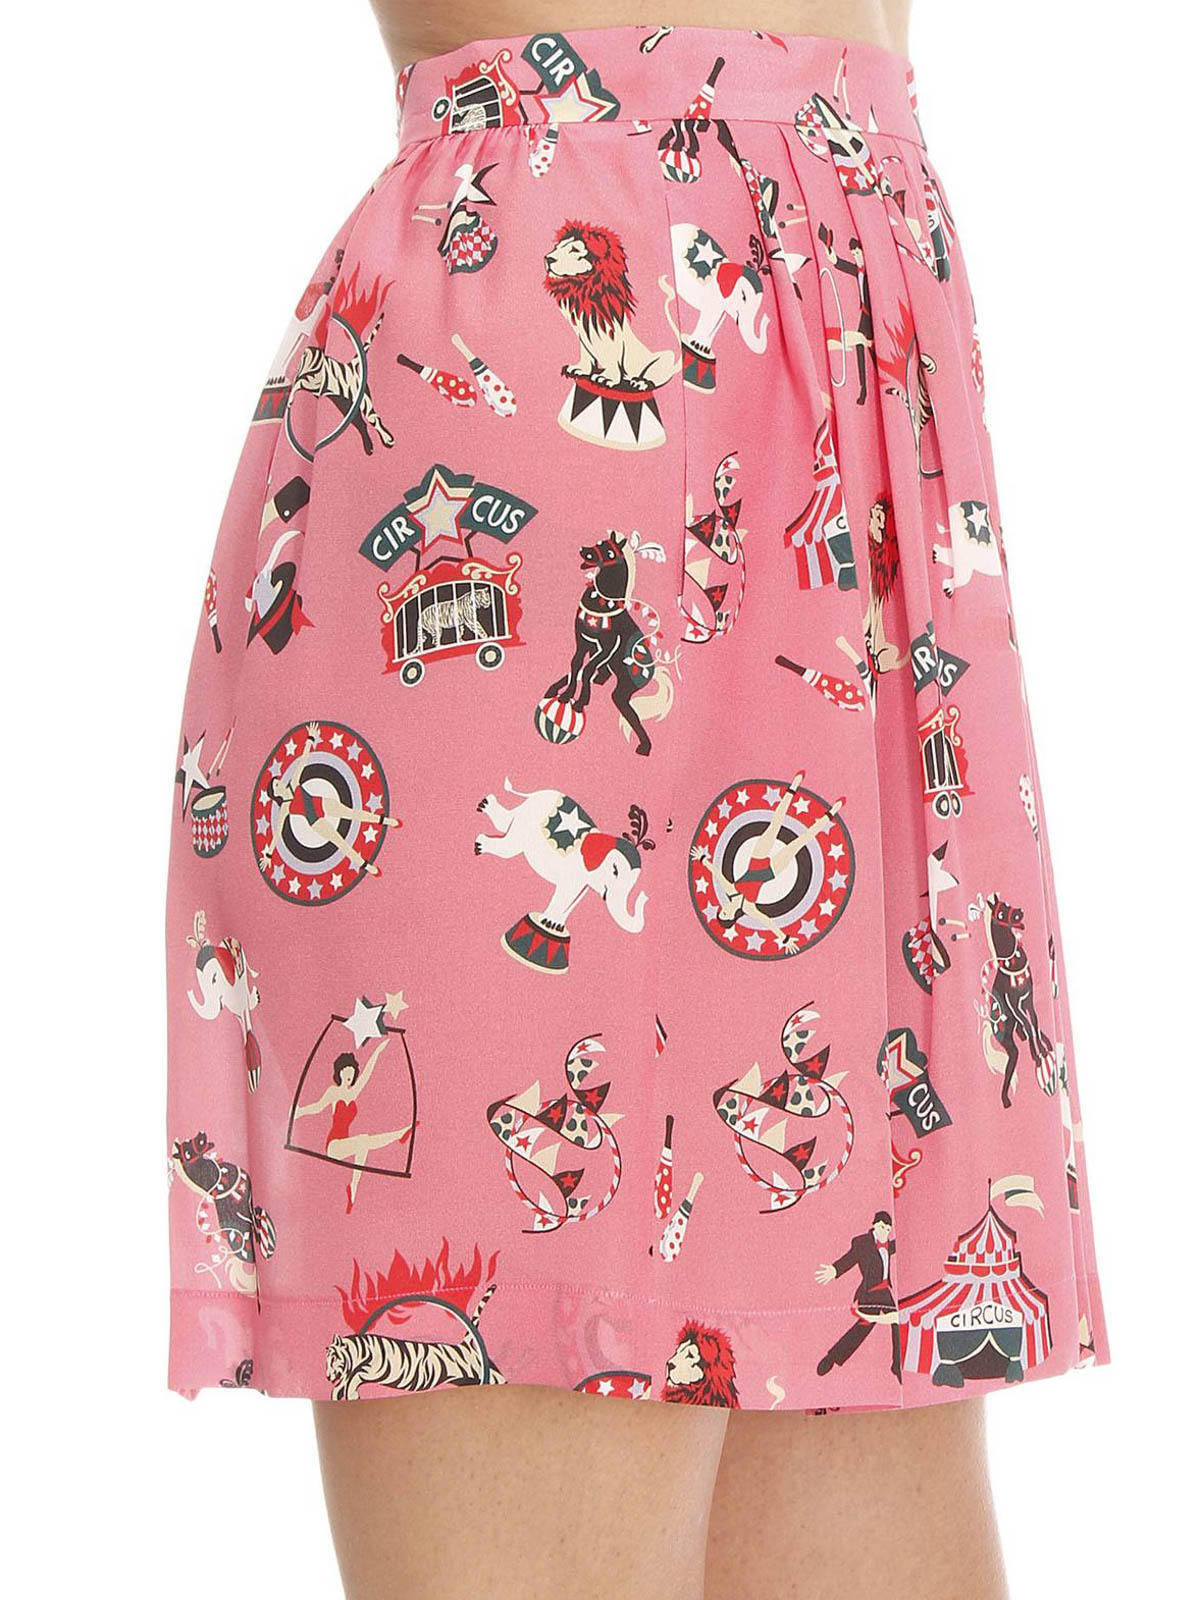 Printed Skirts Long skirts with exquiste patterns printed on a cotton/rayon fabric. These skirts are aggressively priced and are great for day wear or casual wear for Spring and Summer.